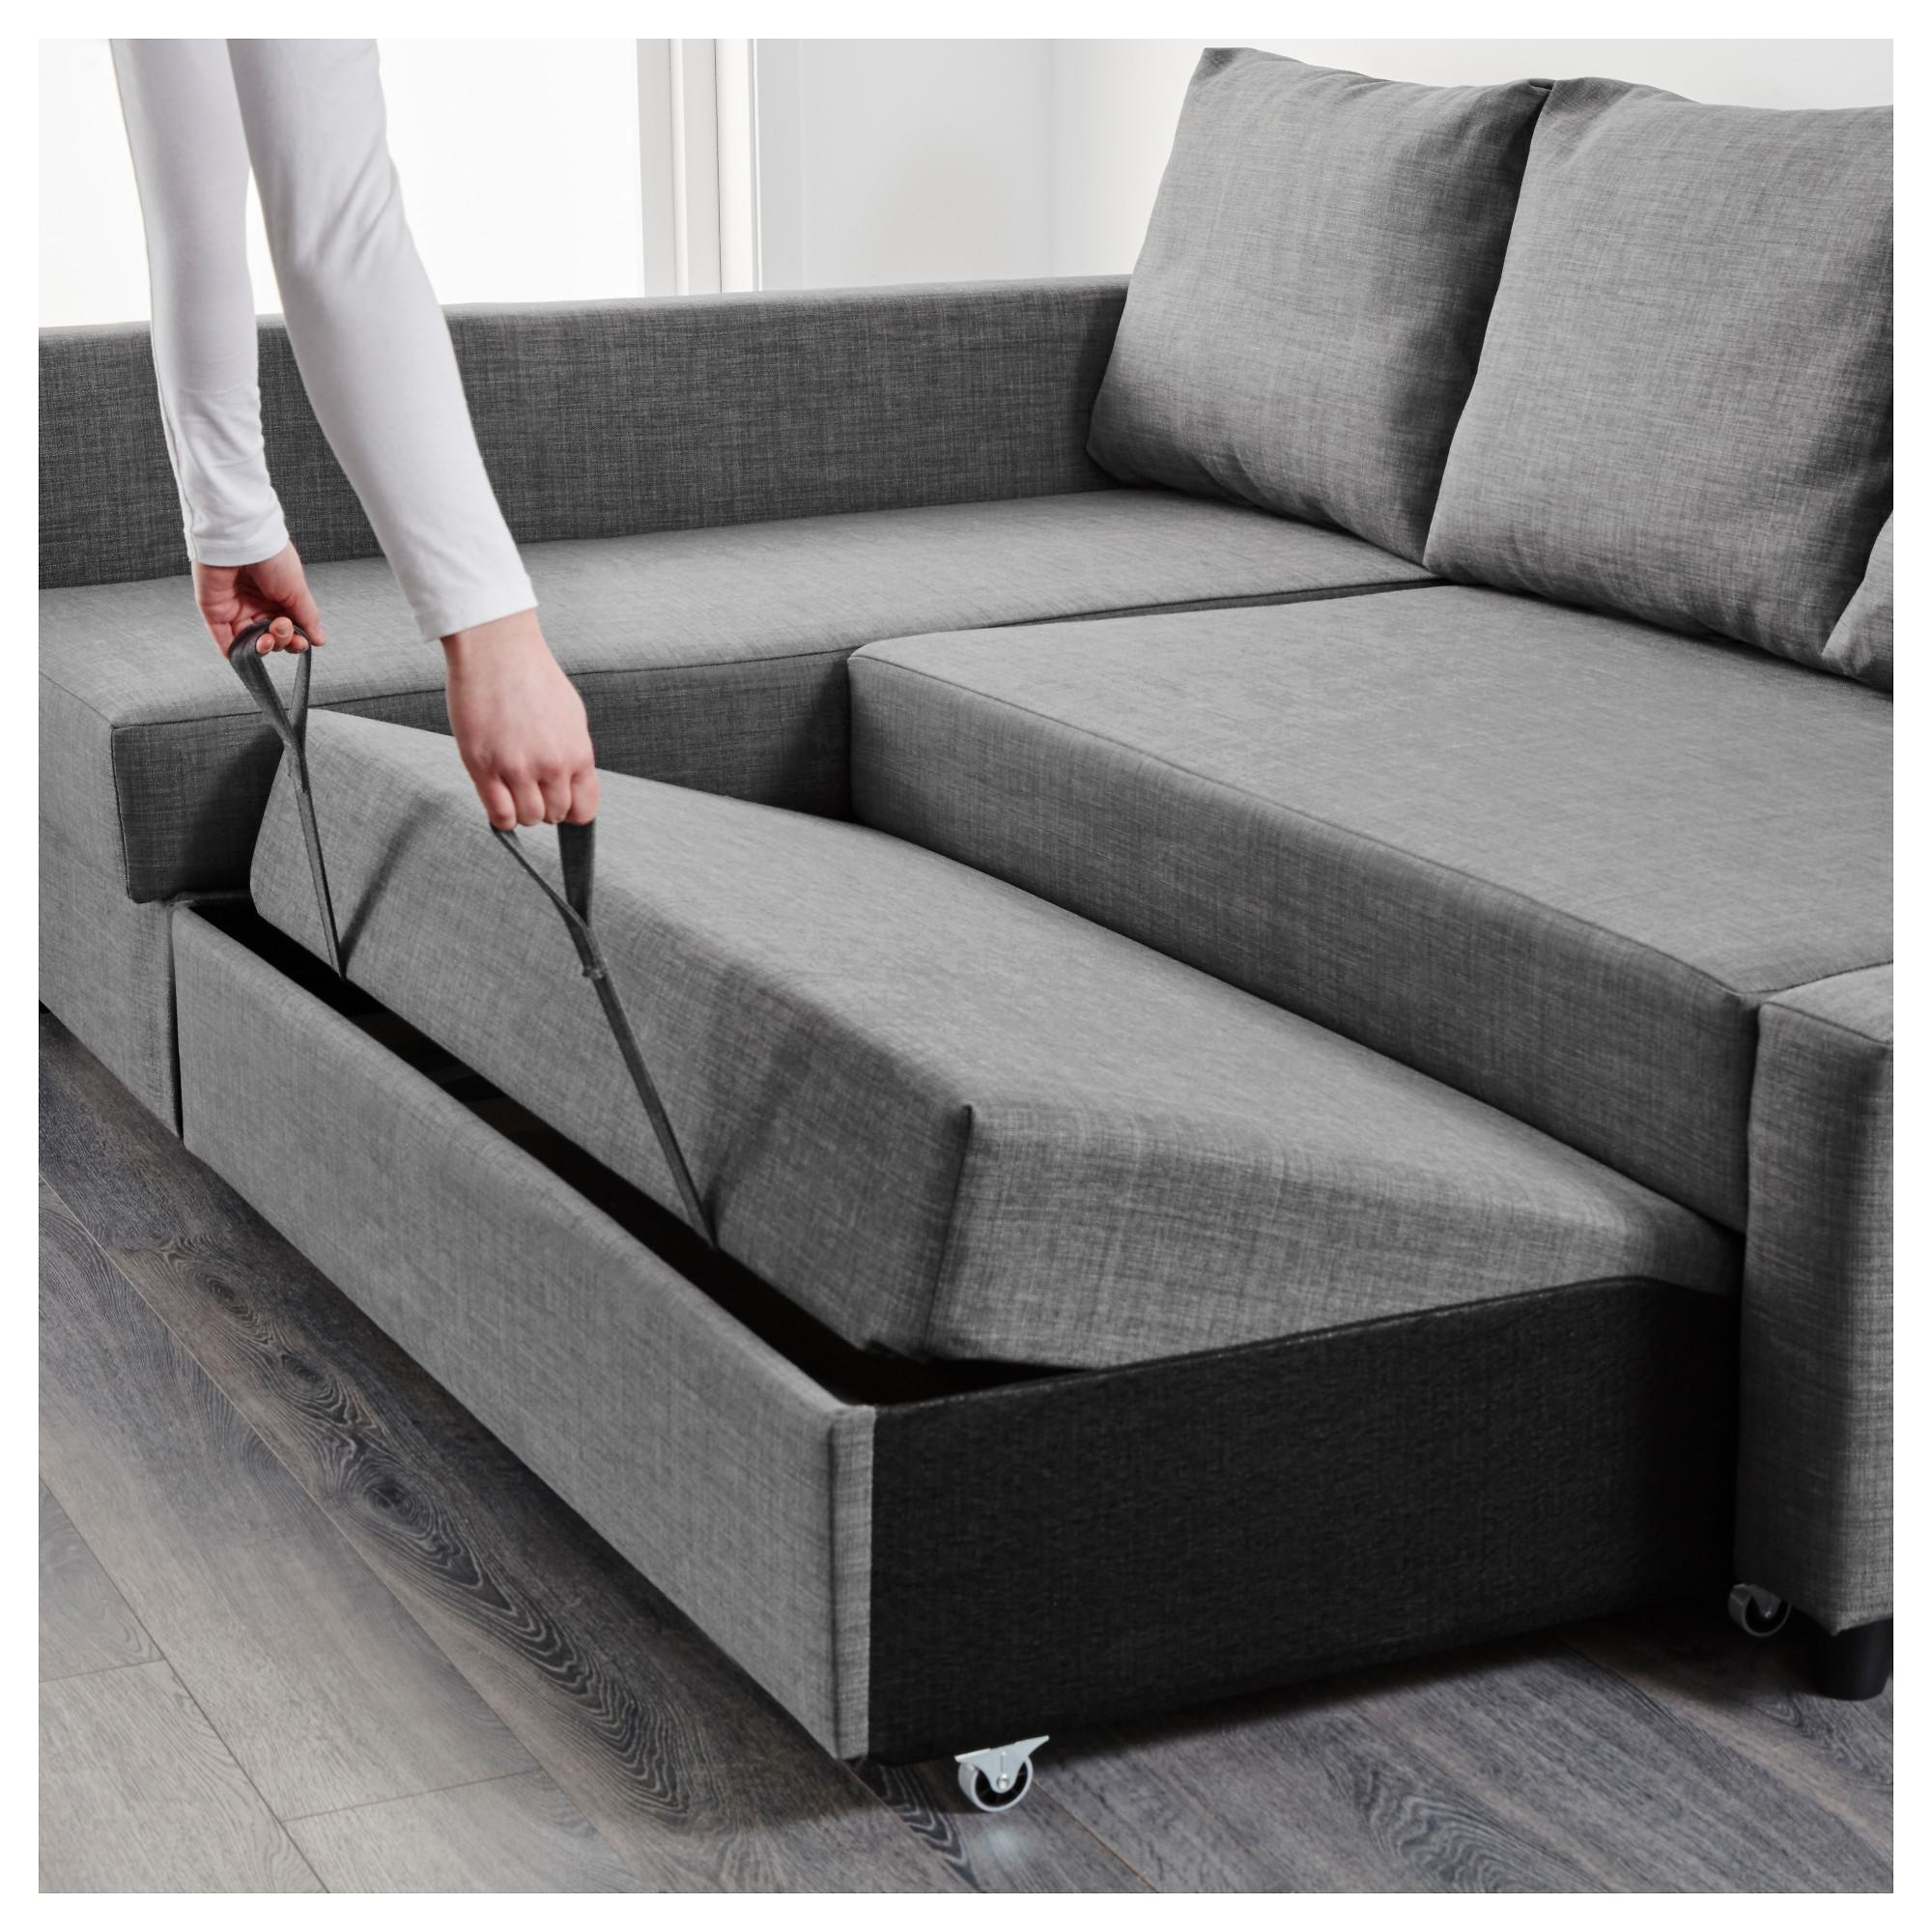 Sofas Center : Corner Sofa Beds Uk Cheap Birminghamcorner For Throughout Cheap Corner Sofas (Image 16 of 20)